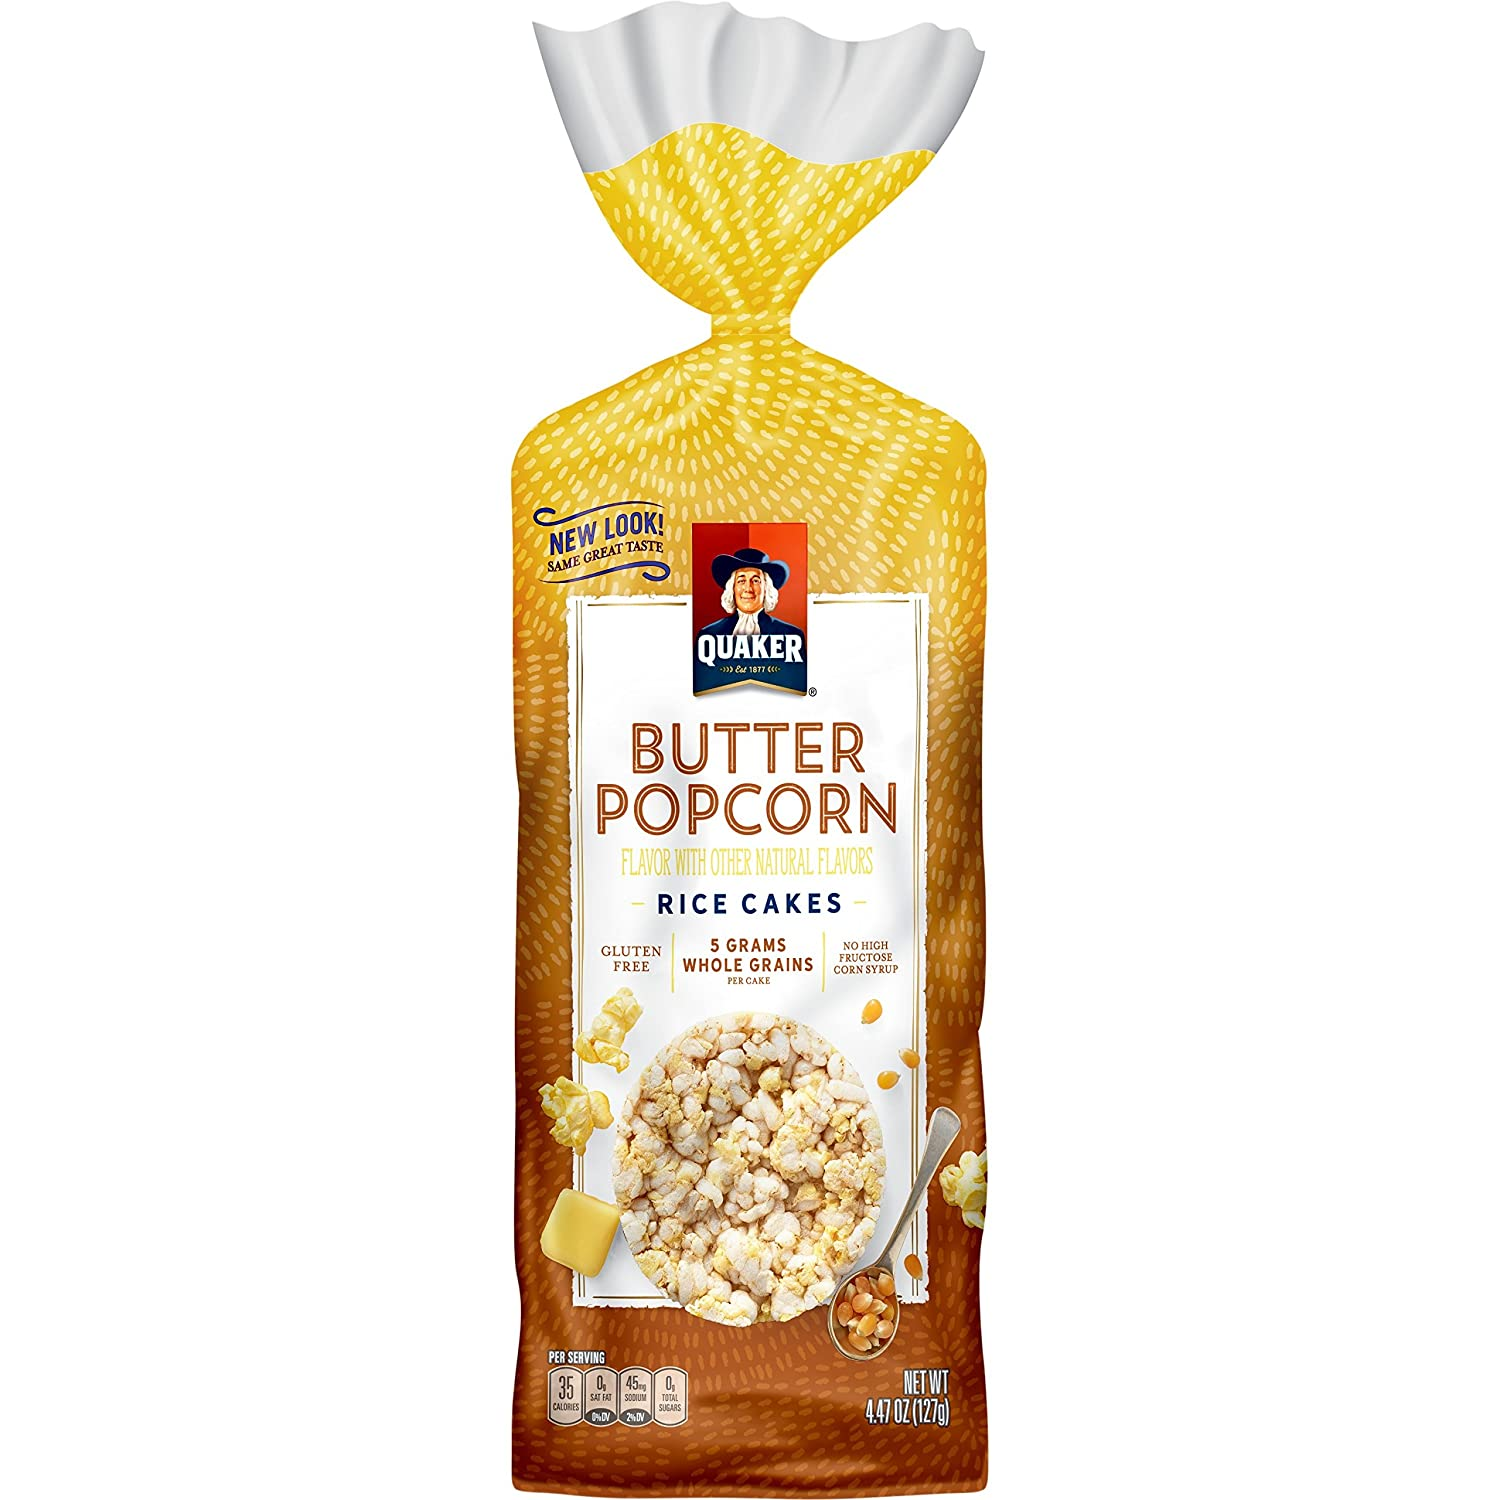 Quaker Buttered Popcorn Rice Cakes 4 47 Oz Amazon Com Grocery Gourmet Food